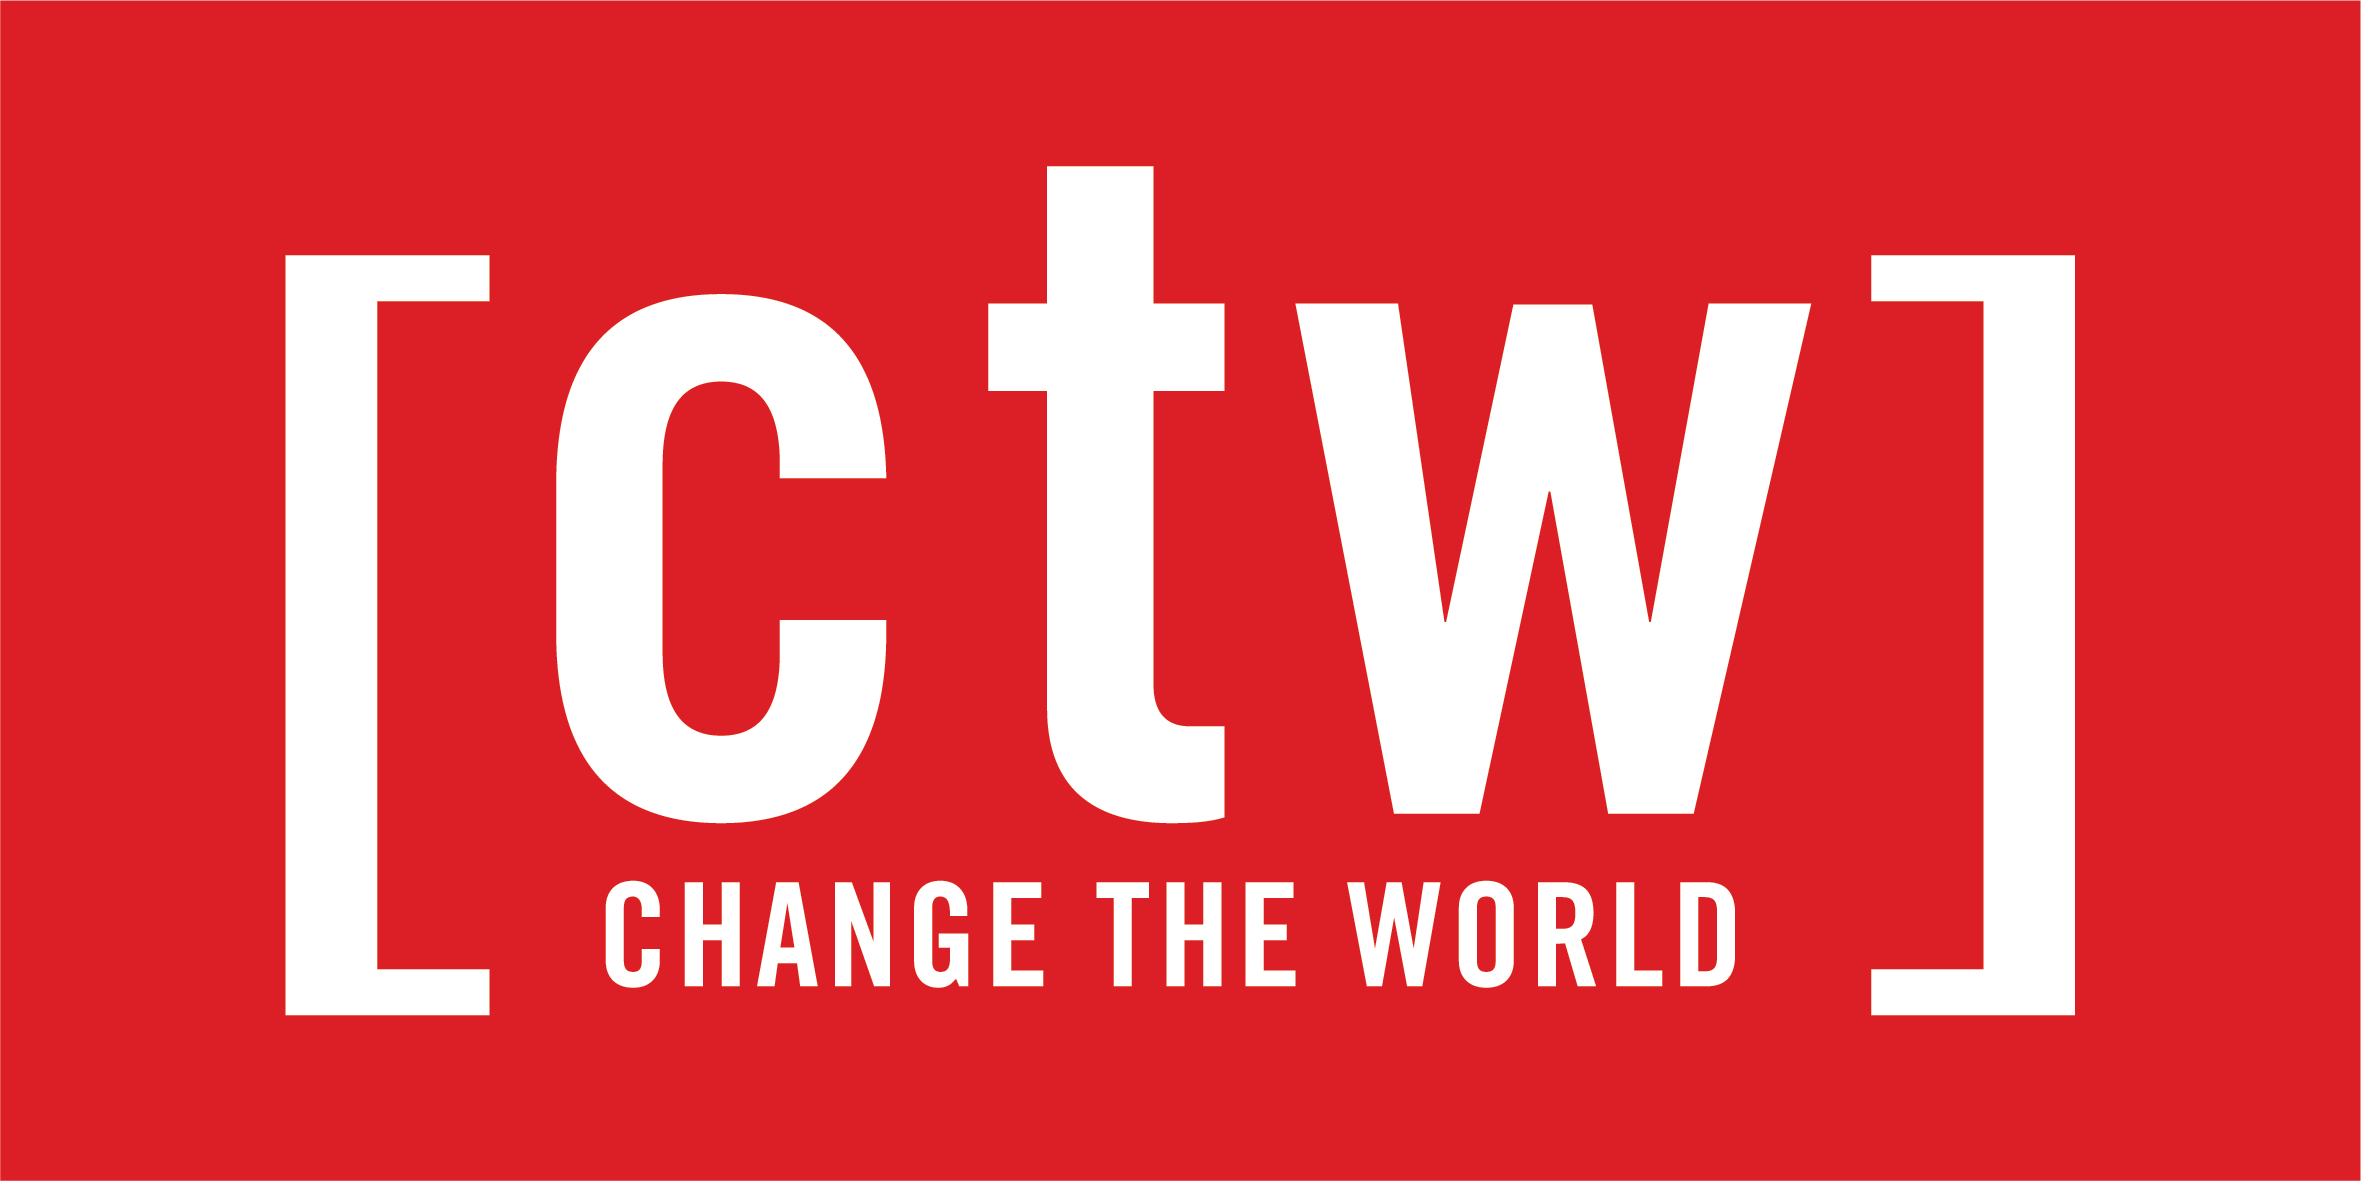 CTW - Change The World